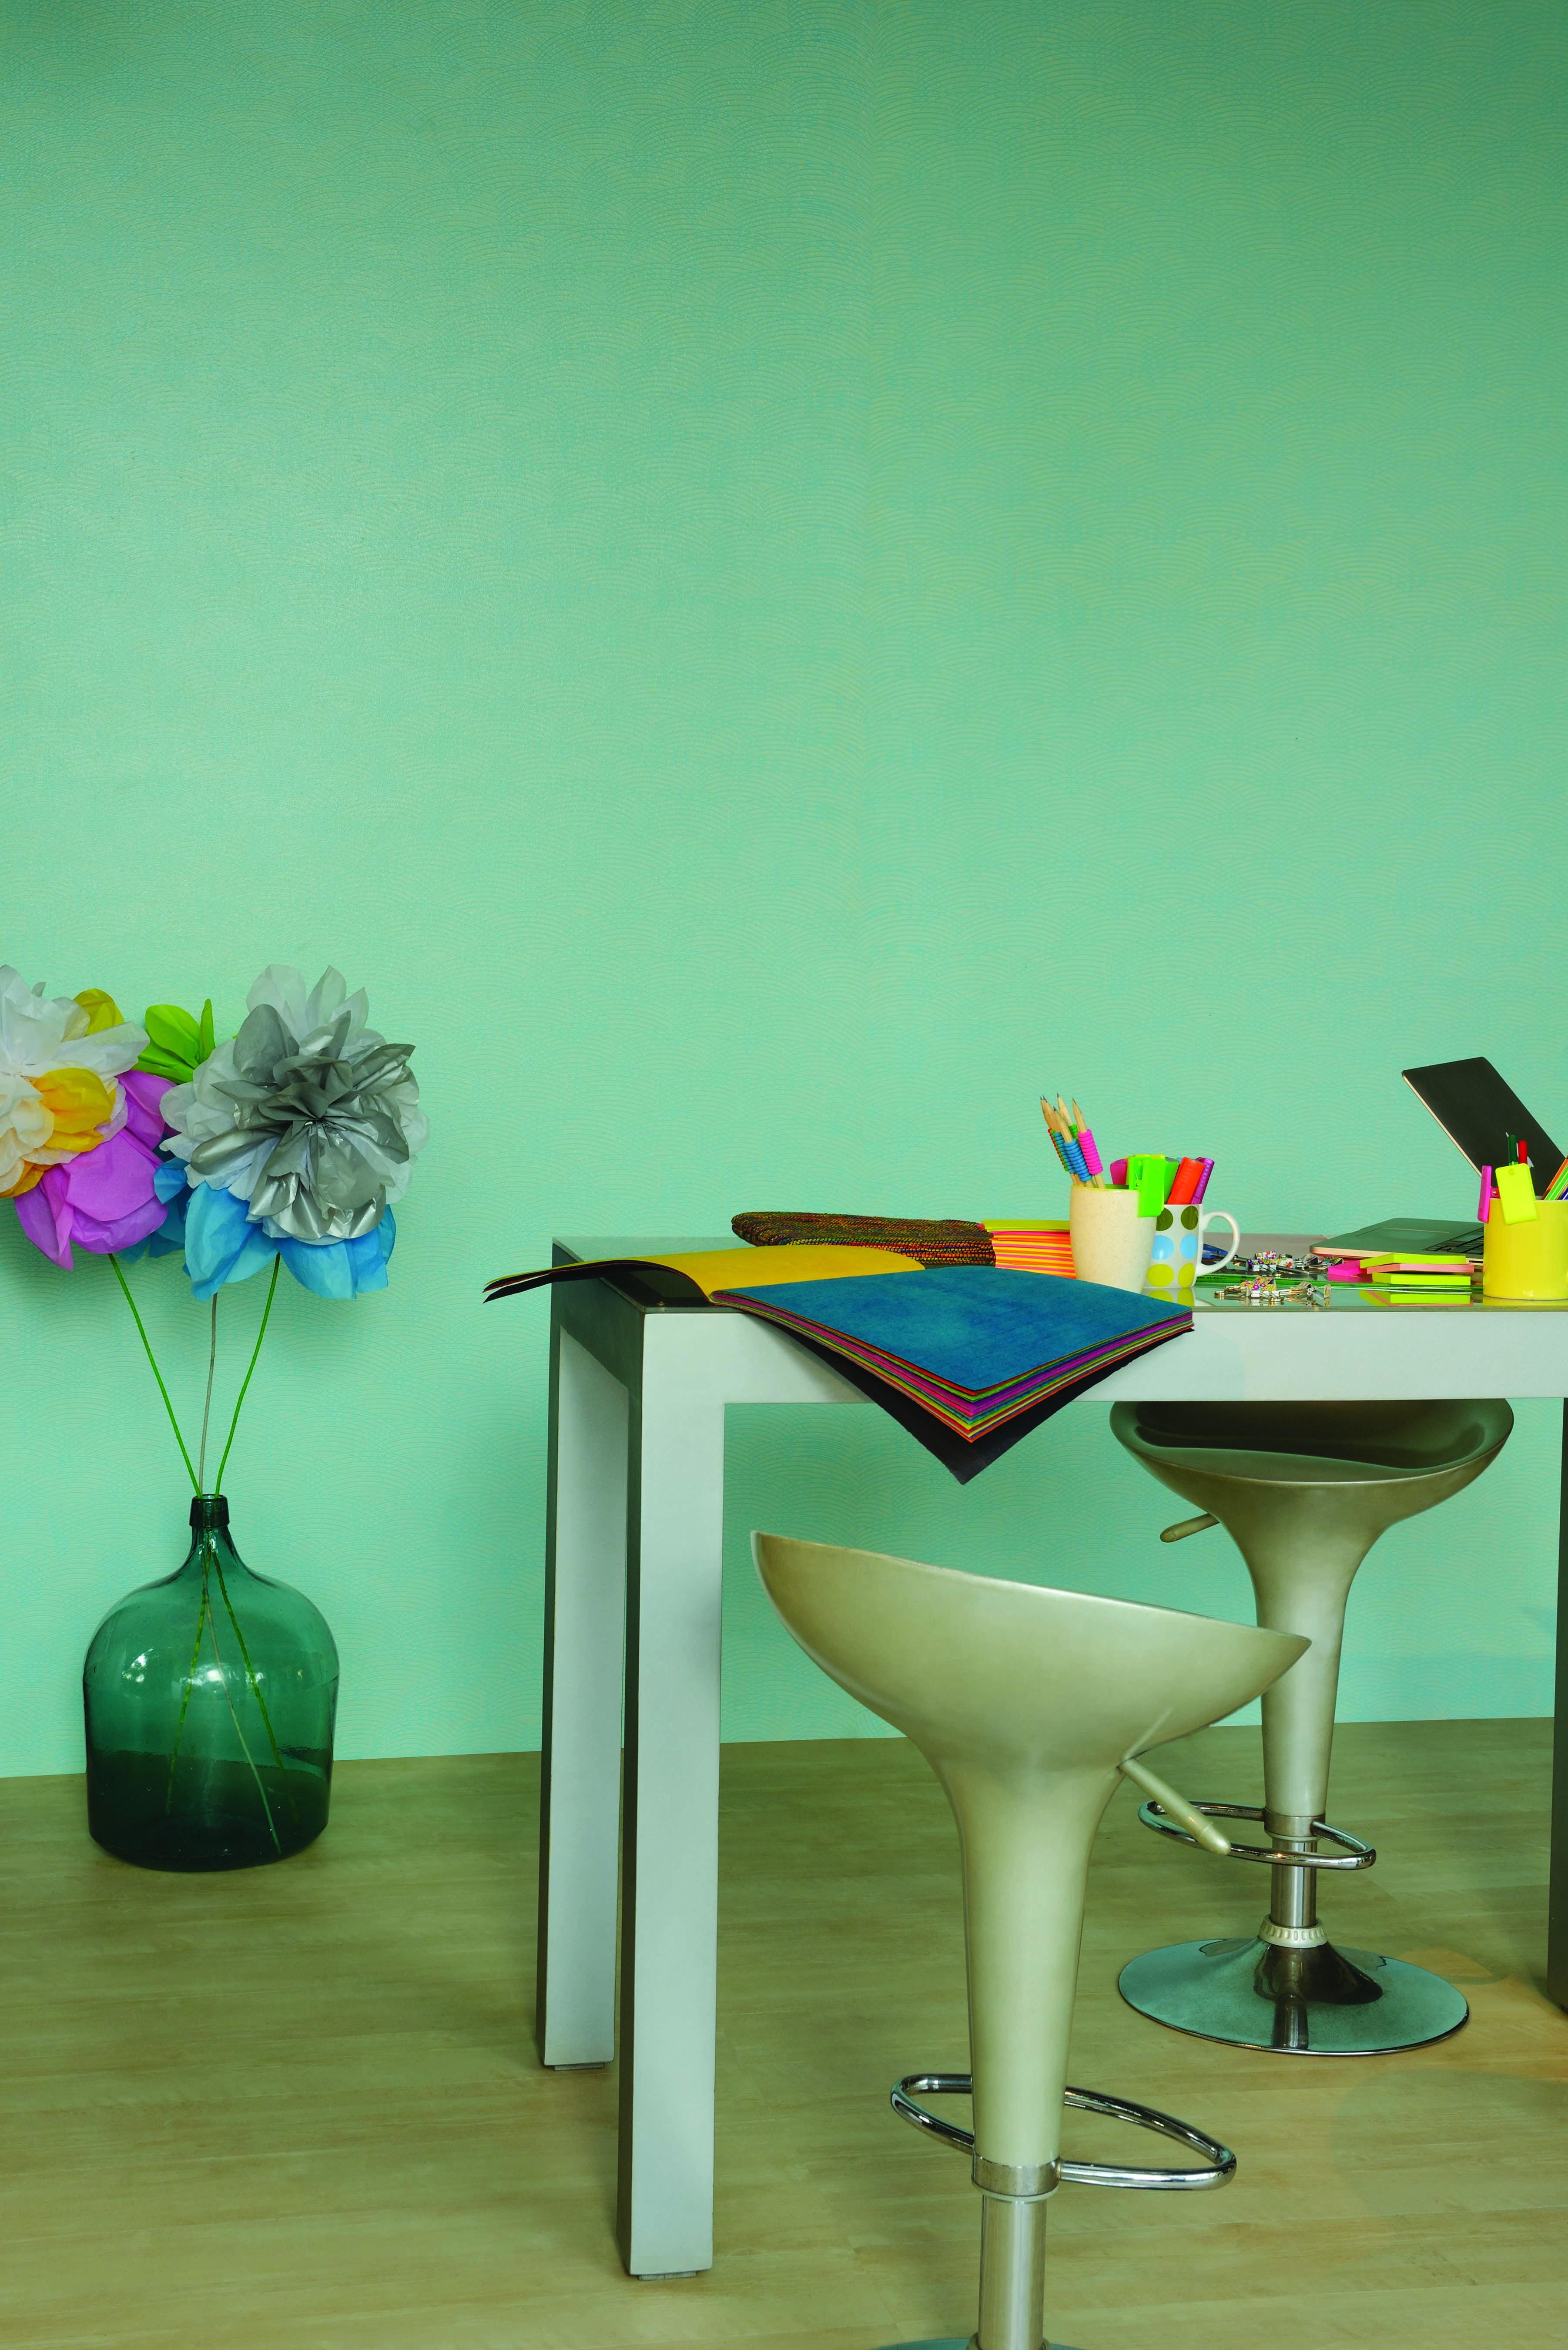 Smart Texture On Wall Brings In Collaborative Thoughts Into Study Space Wall Texture By Asian Paints Royale Play Com Asian Paints Textured Walls Study Space